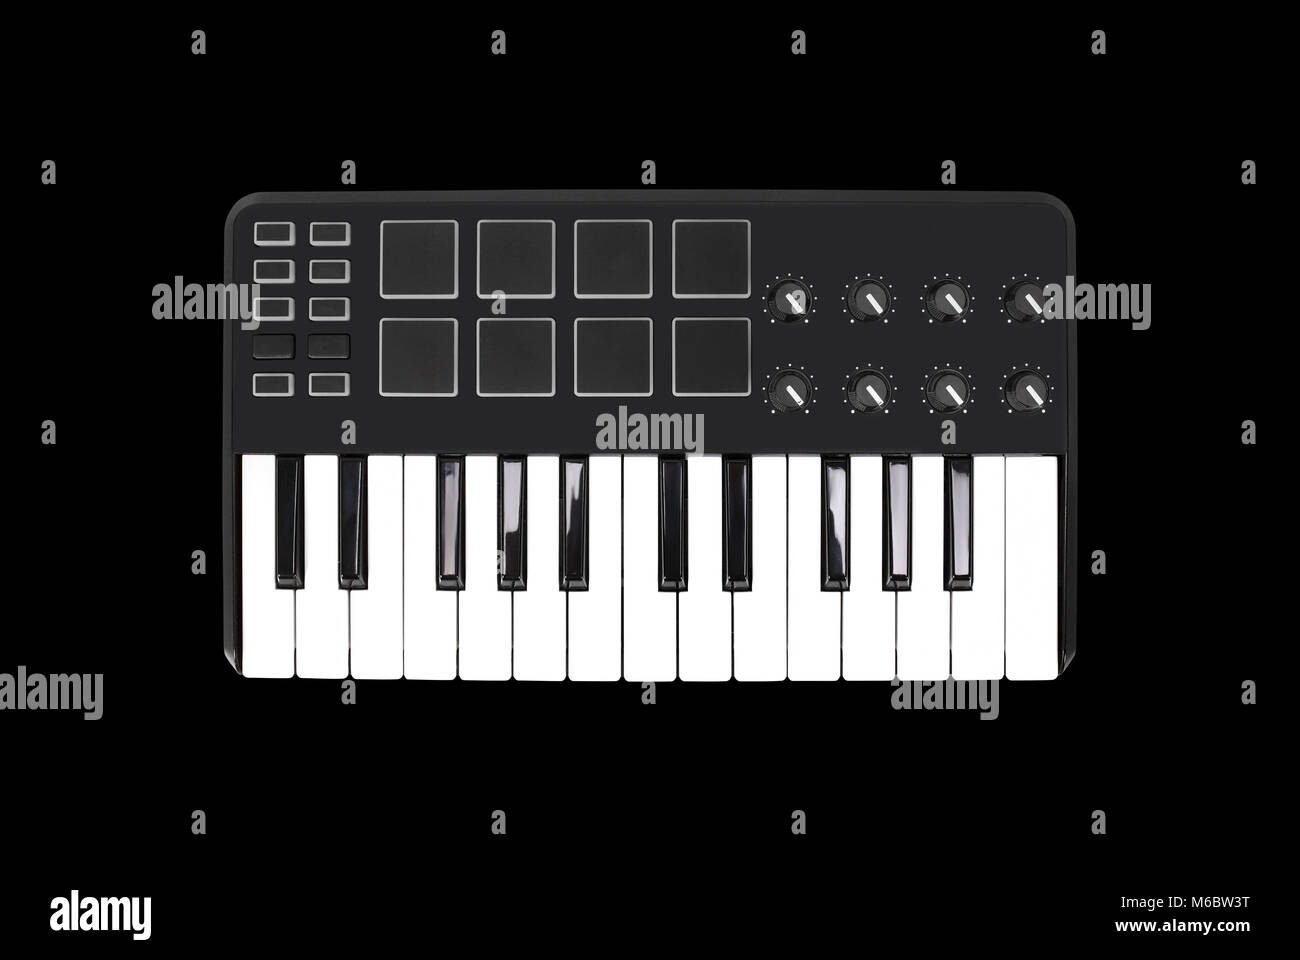 Musical instrument - Sloseup MIDI piano keyboard. It is isolated on a black background - Stock Image